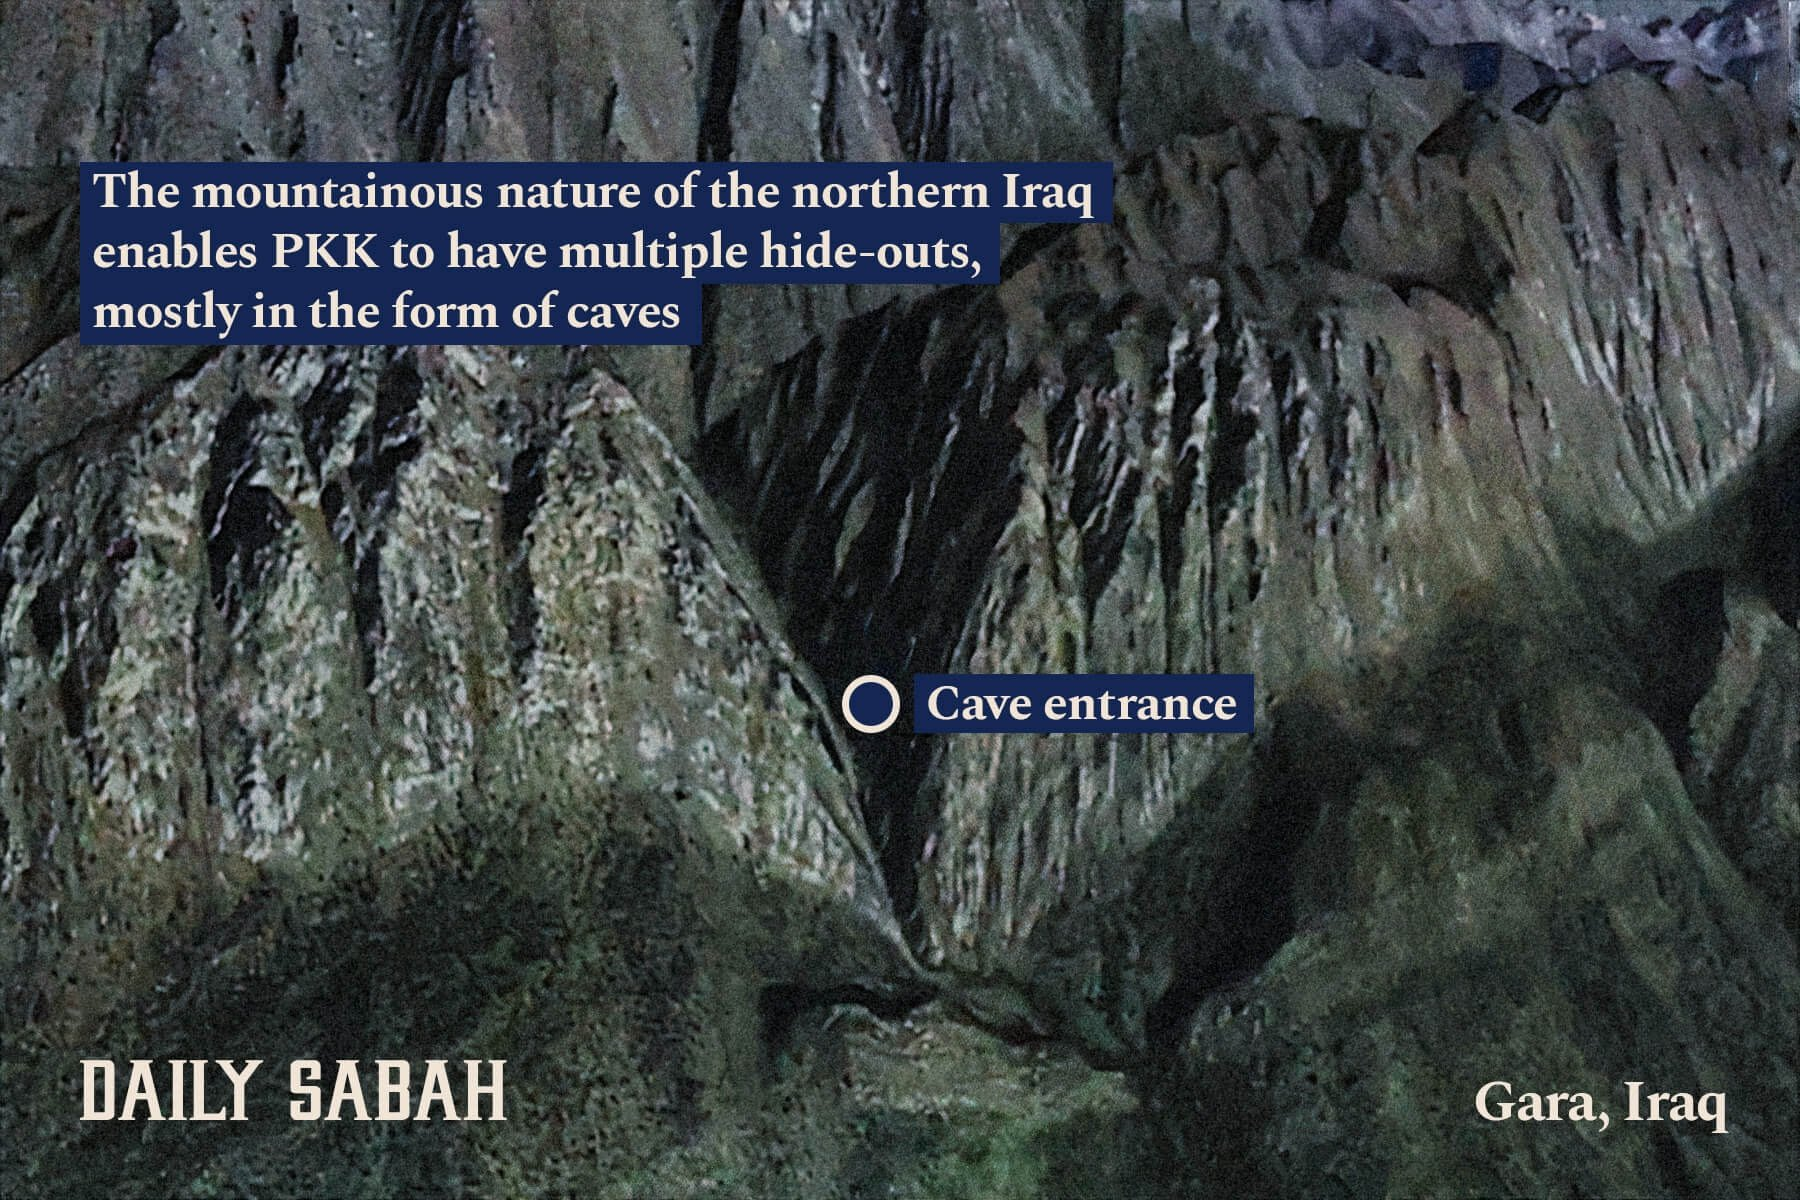 The mountainous area in northern Iraq's Gara region in which caves used by PKK terrorists were found is seen in this photo made public by the Turkish military on Feb. 14, 2021.